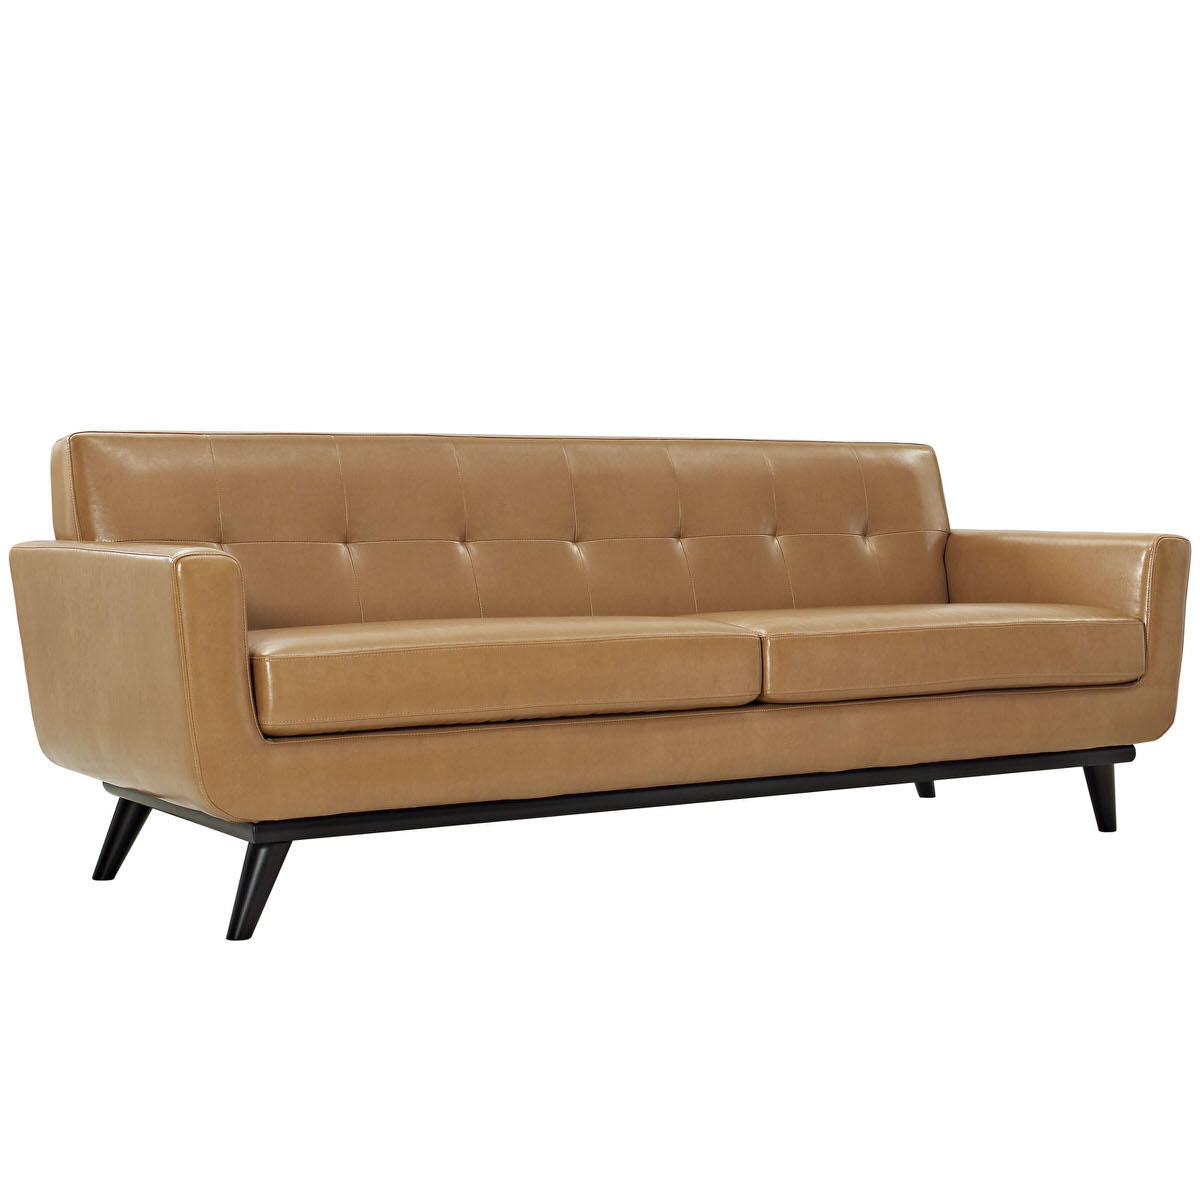 Engage Bonded Leather Sofa Tan By Modern Living